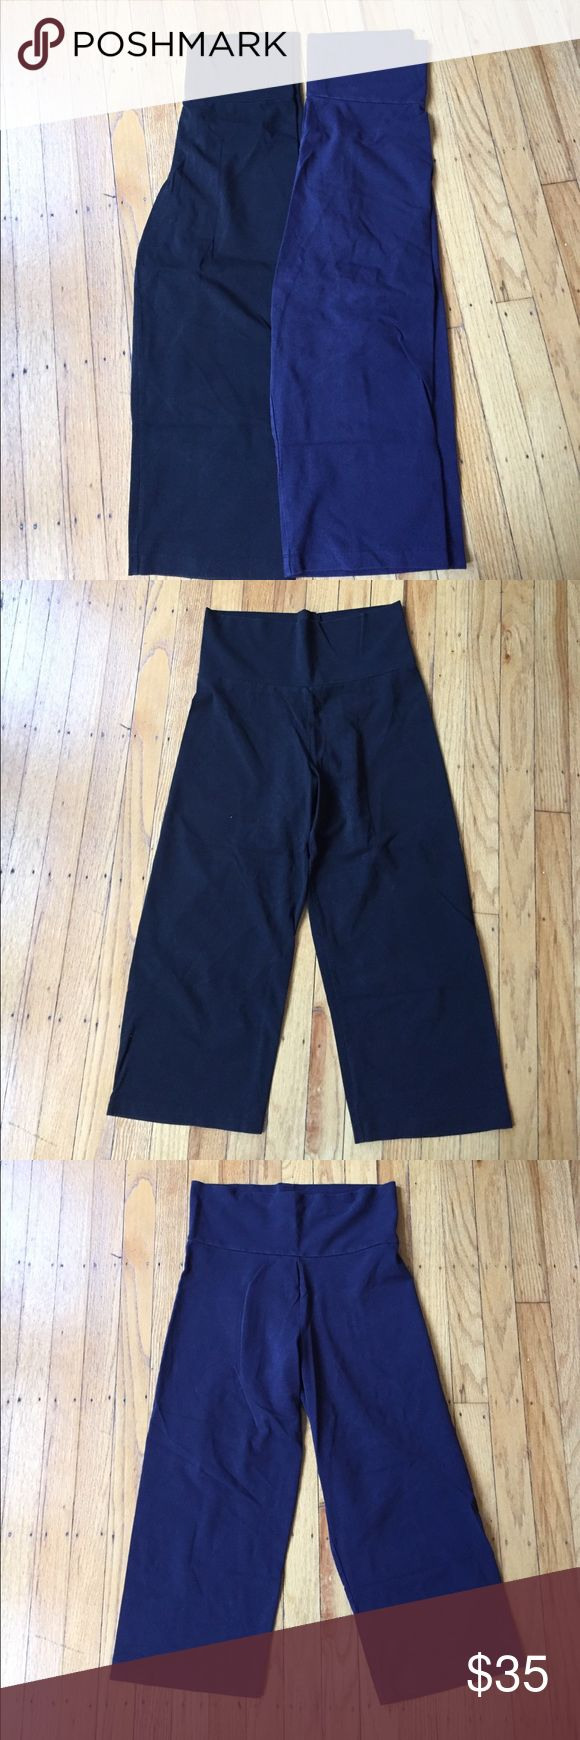 SALE 🌟 Bundle of GUC J Crew yoga capris Bundle of GUC J Crew yoga capris (one black and one navy) with waist that can be folded over. Please let me know if you have any questions and thanks for visiting my closet! J. Crew Pants Leggings